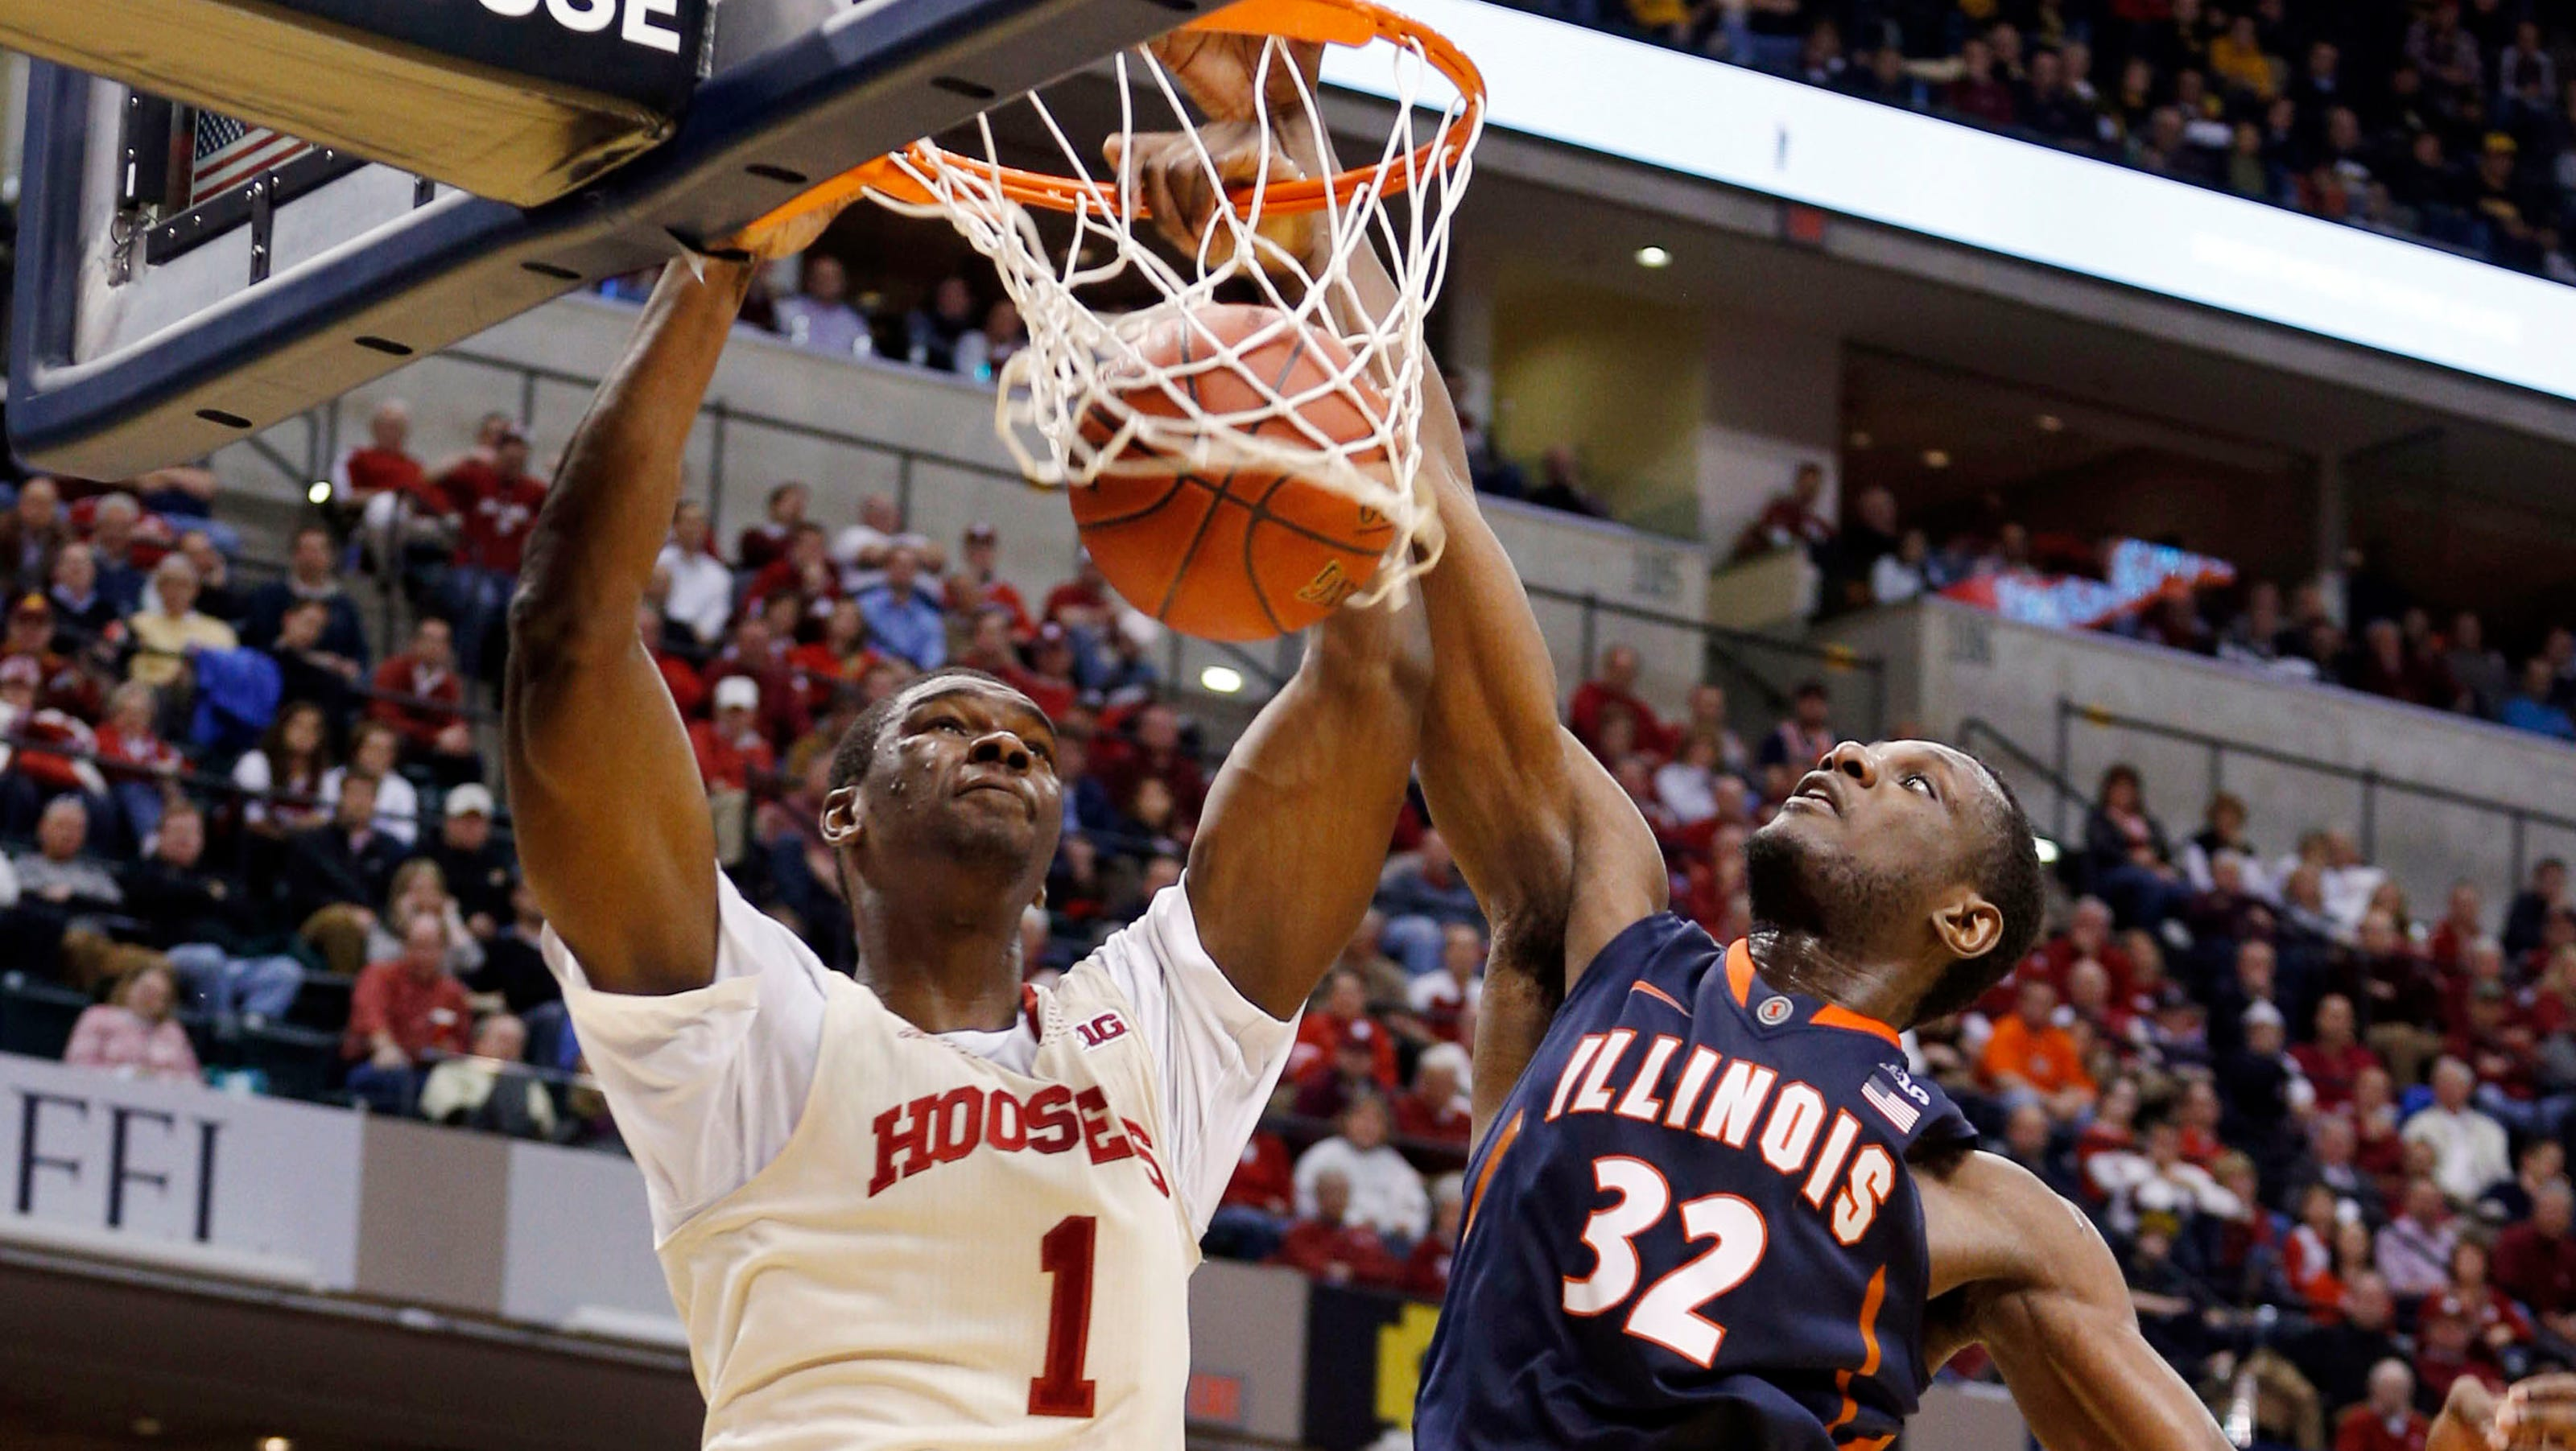 Indiana Hoosiers News Scores Schedule Stats Roster | All Basketball Scores Info